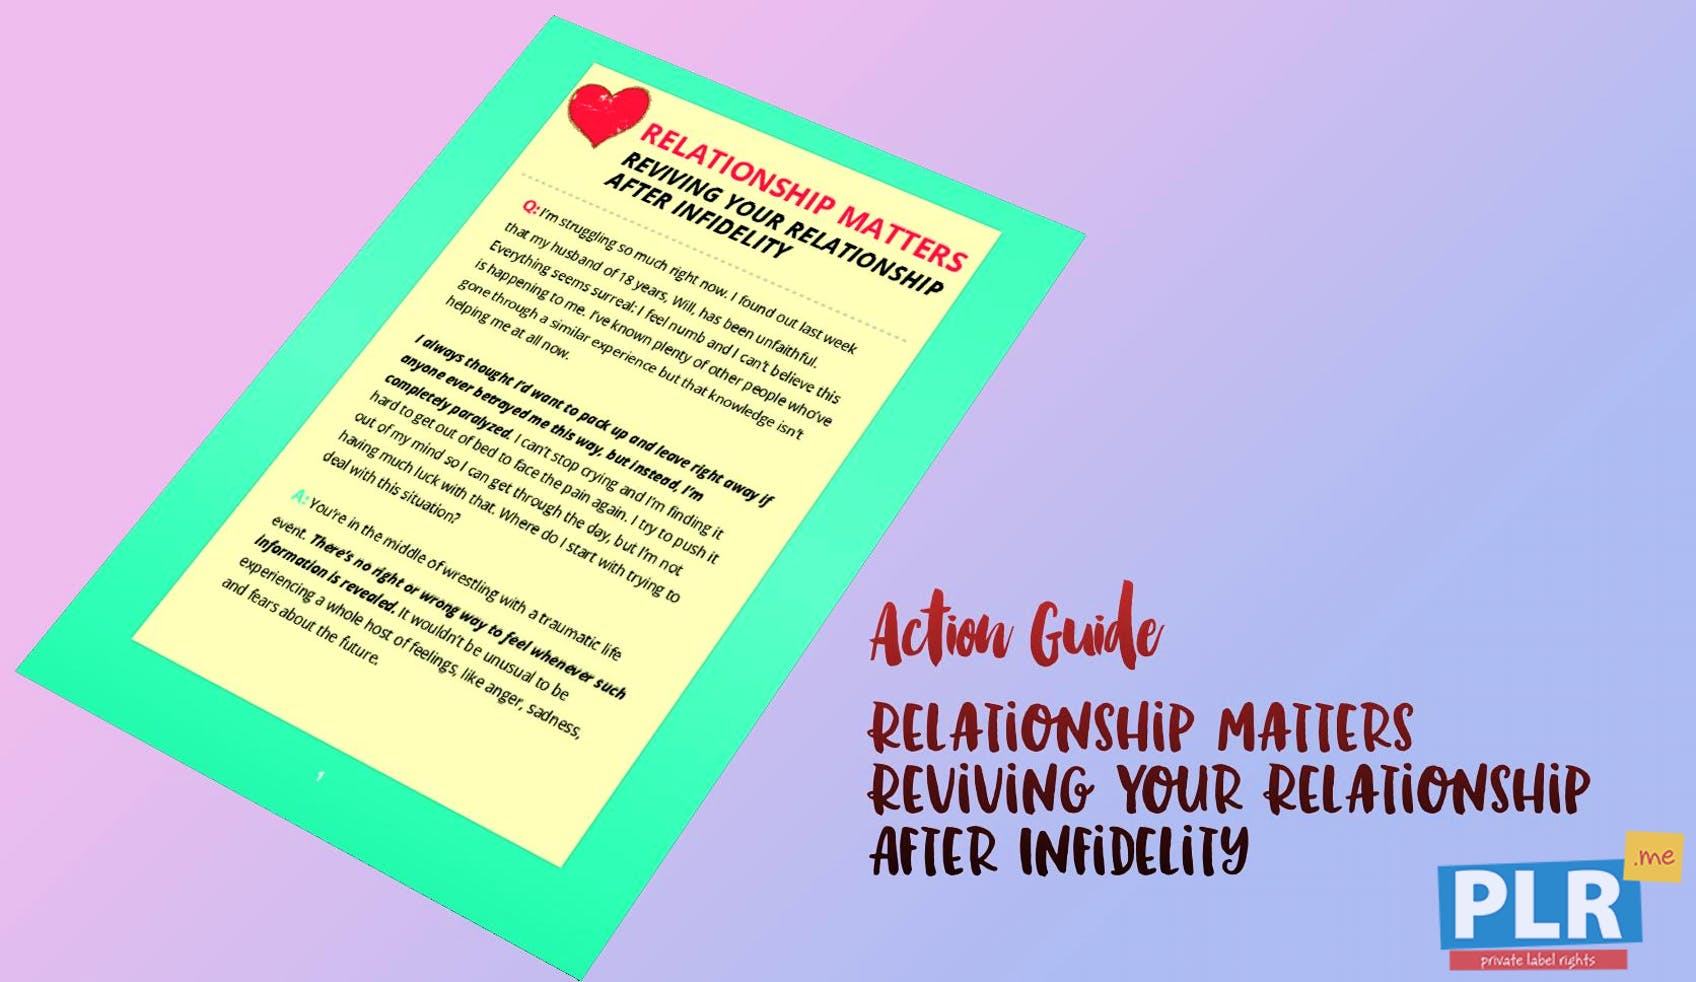 Relationship Matters Reviving Your Relationship After Infidelity